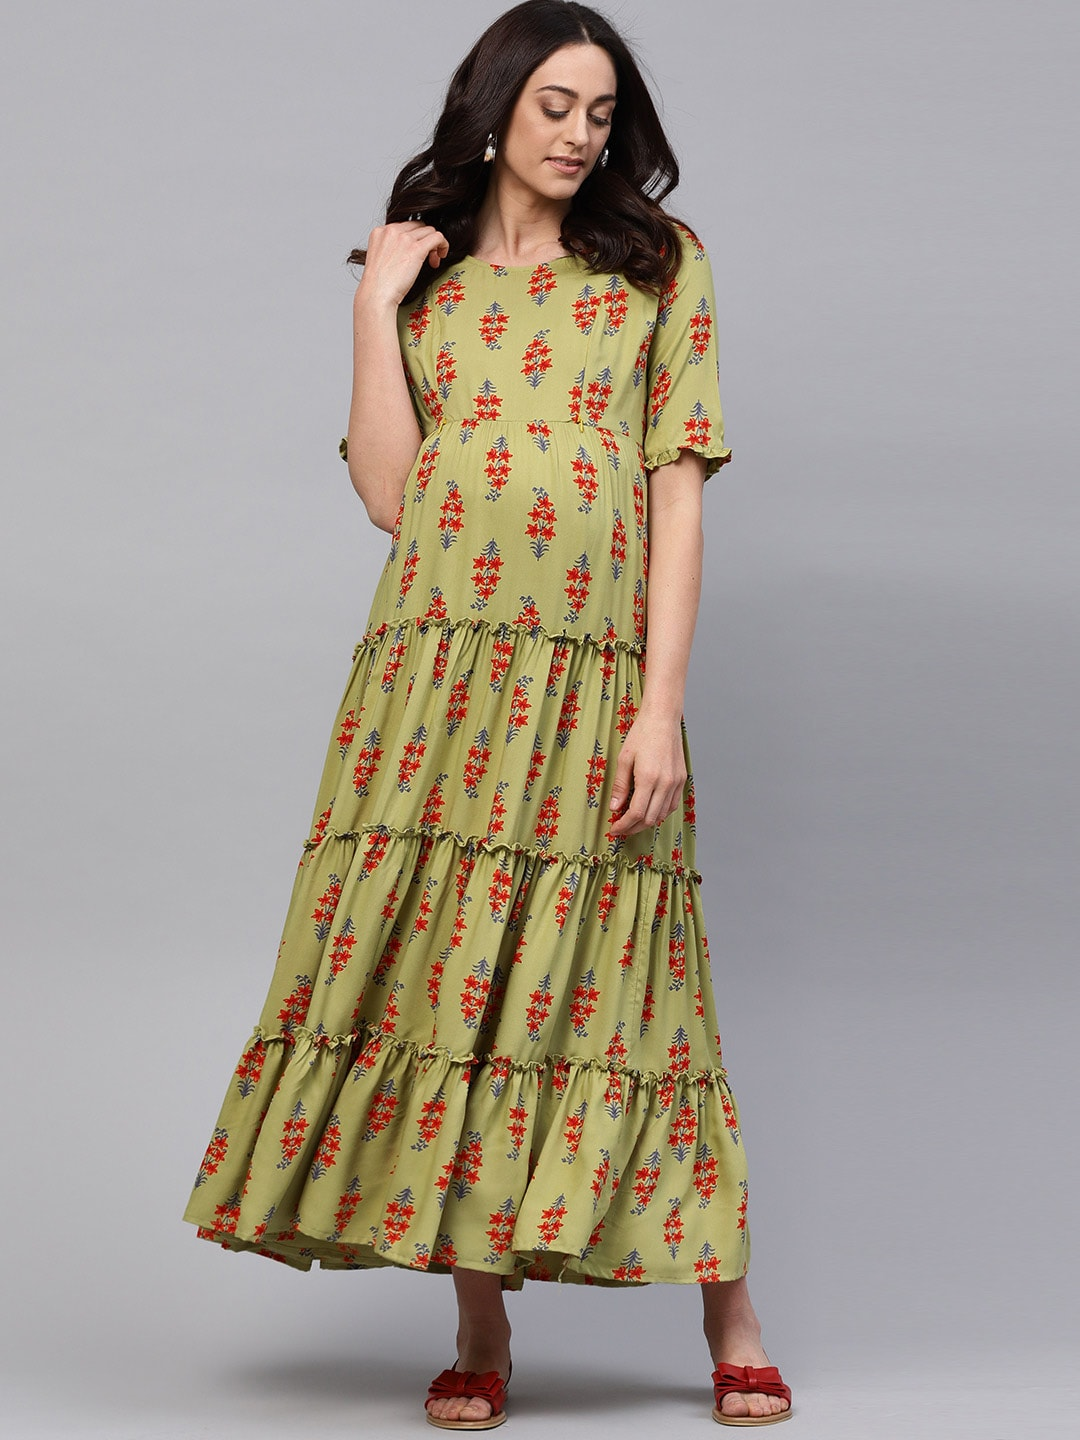 f31a0afe4 Maternity Dresses - Buy Pregnancy Dress Online in India